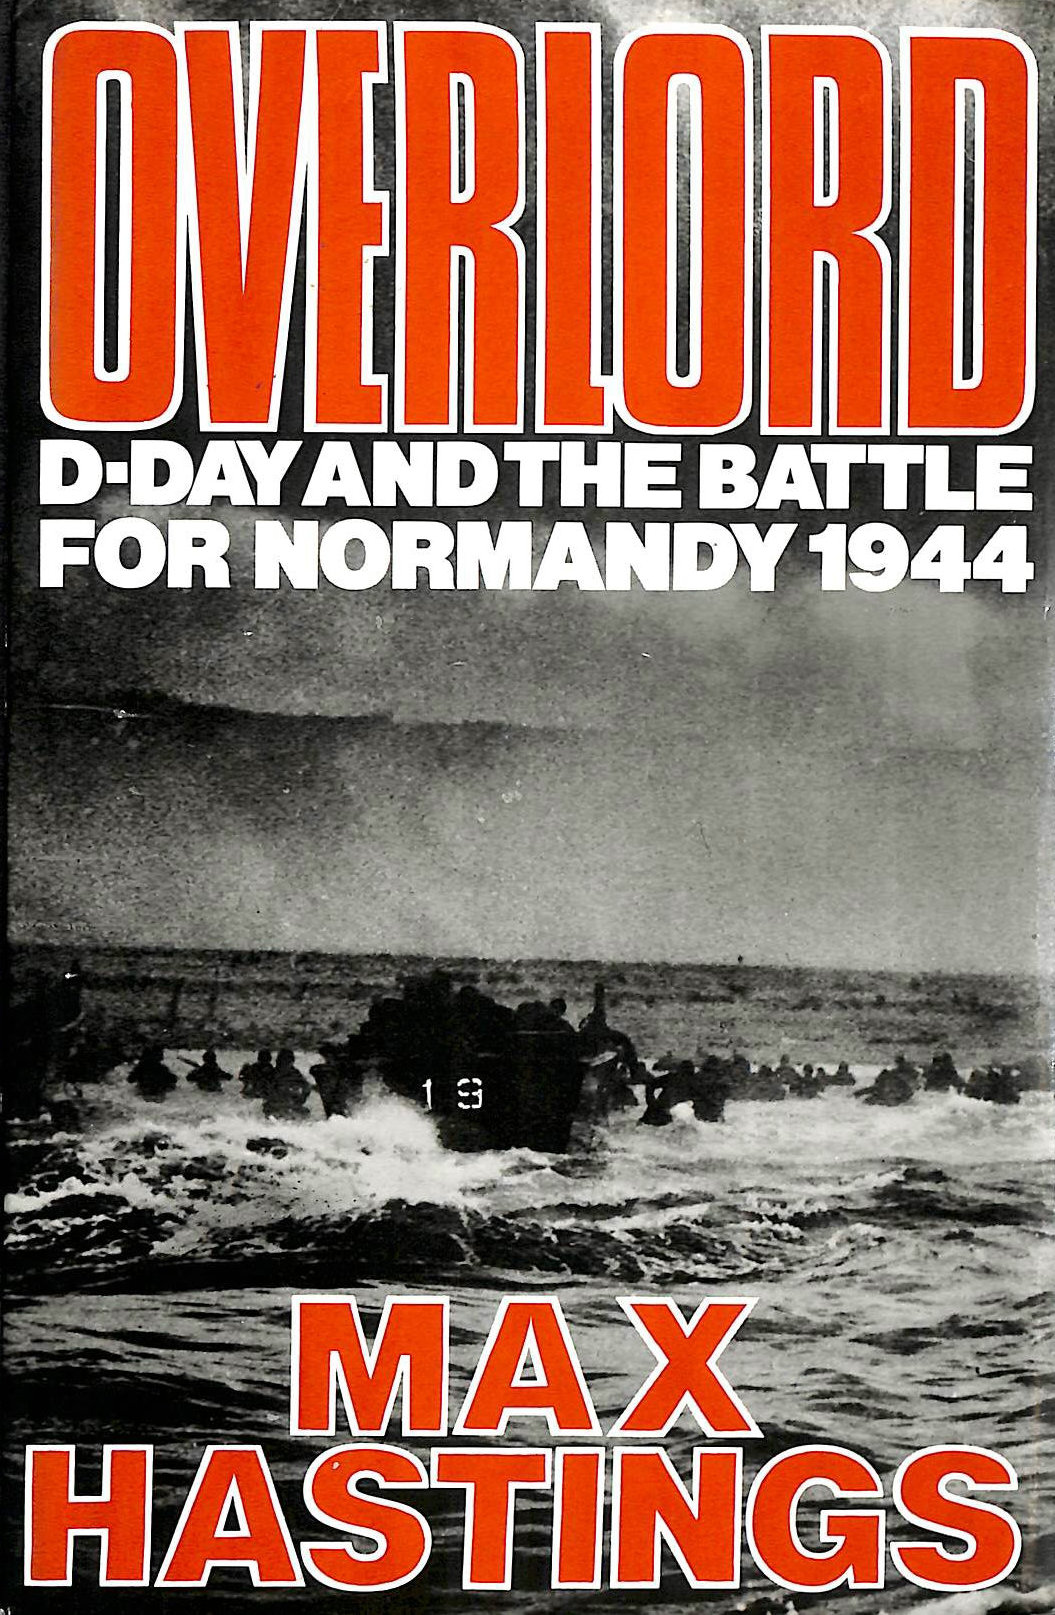 Image for Overlord, D-Day, June 6, 1944, and the battle for Normandy